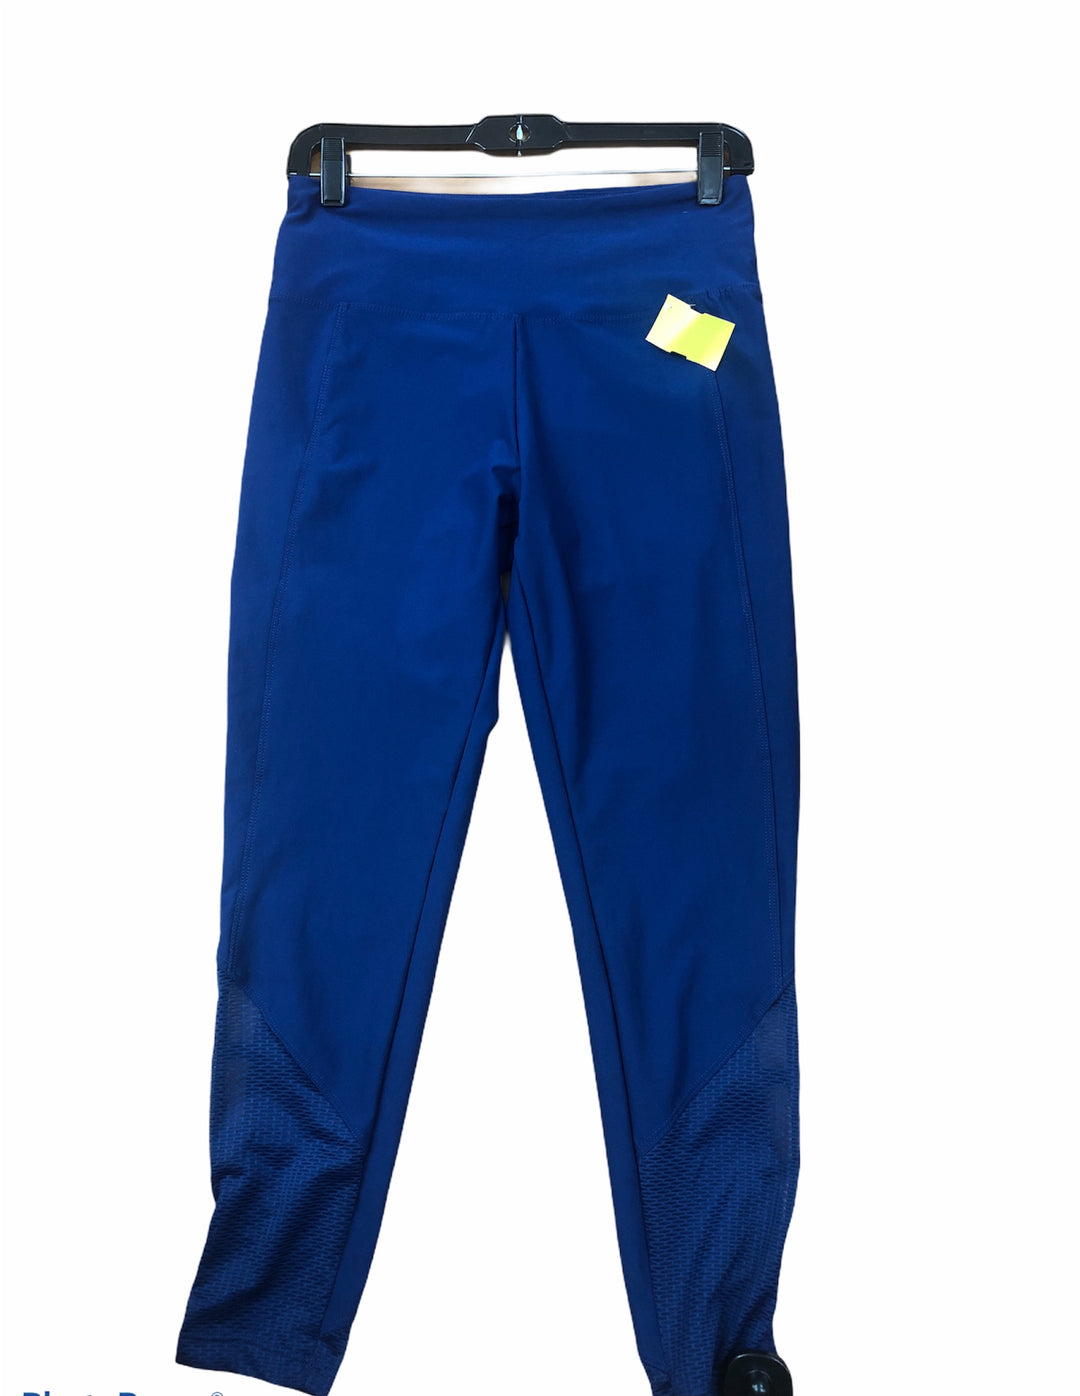 Primary Photo - brand: bally , style: athletic pants , color: blue , size: m , sku: 267-26793-1958